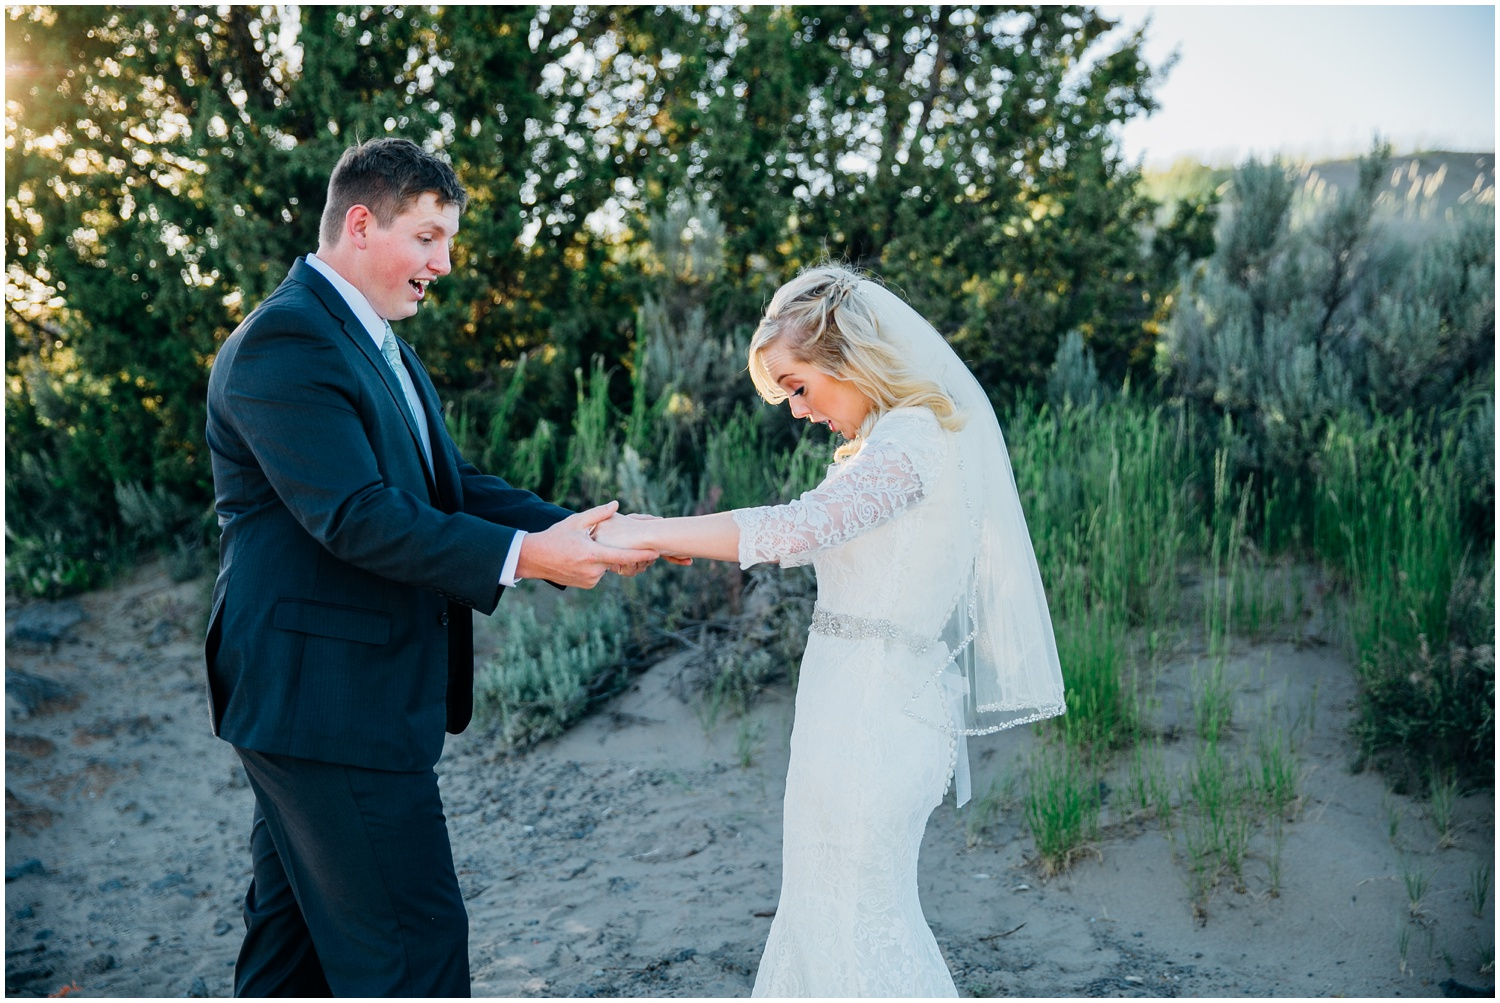 saint-anthony-sand-dunes-bridals-idaho-engagements-colorado-wyoming-wedding-photographer_0709.jpg